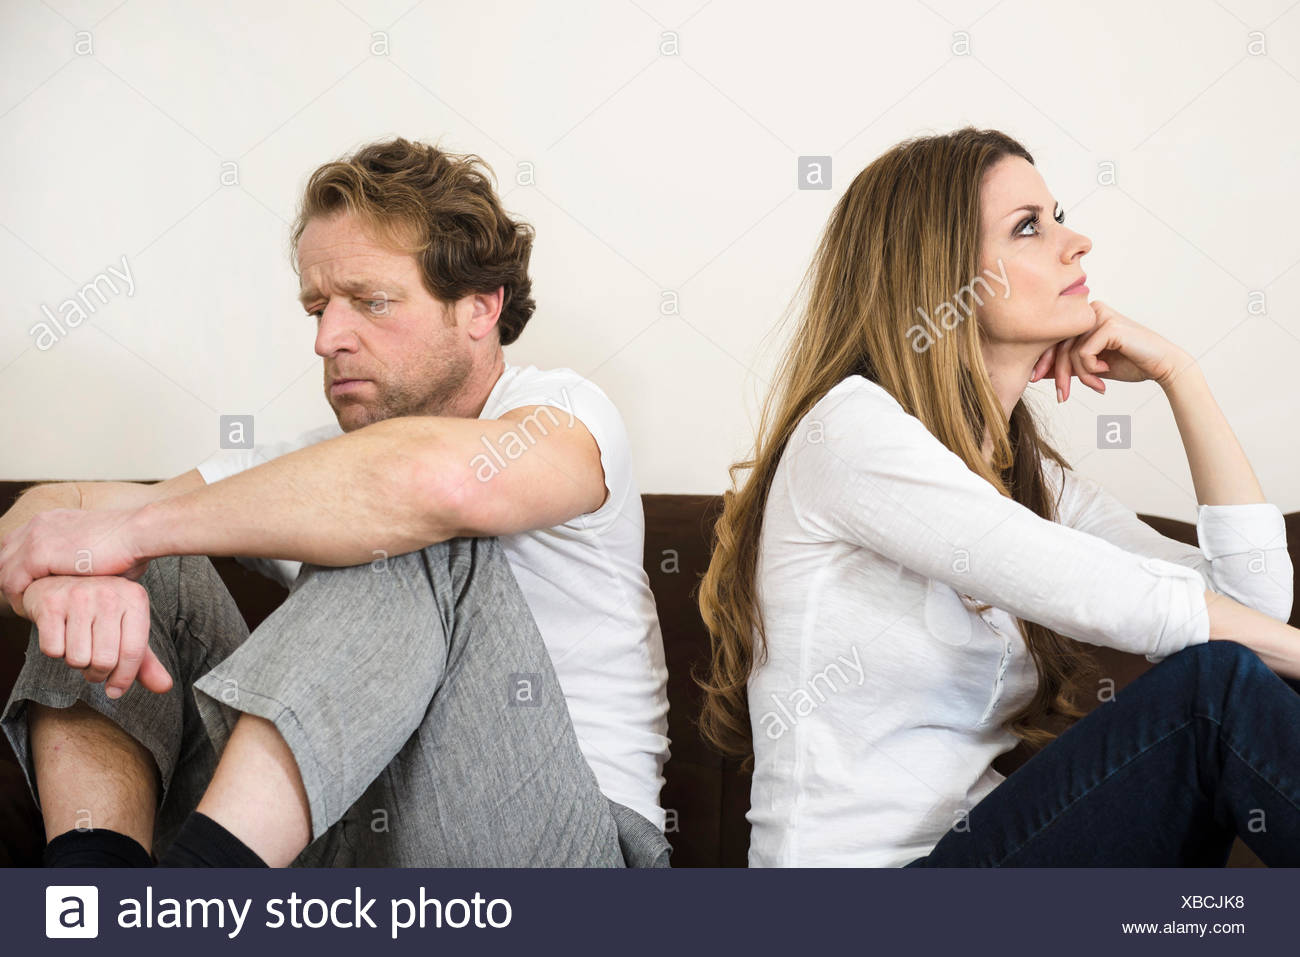 Quarreling couple in living room - Stock Image